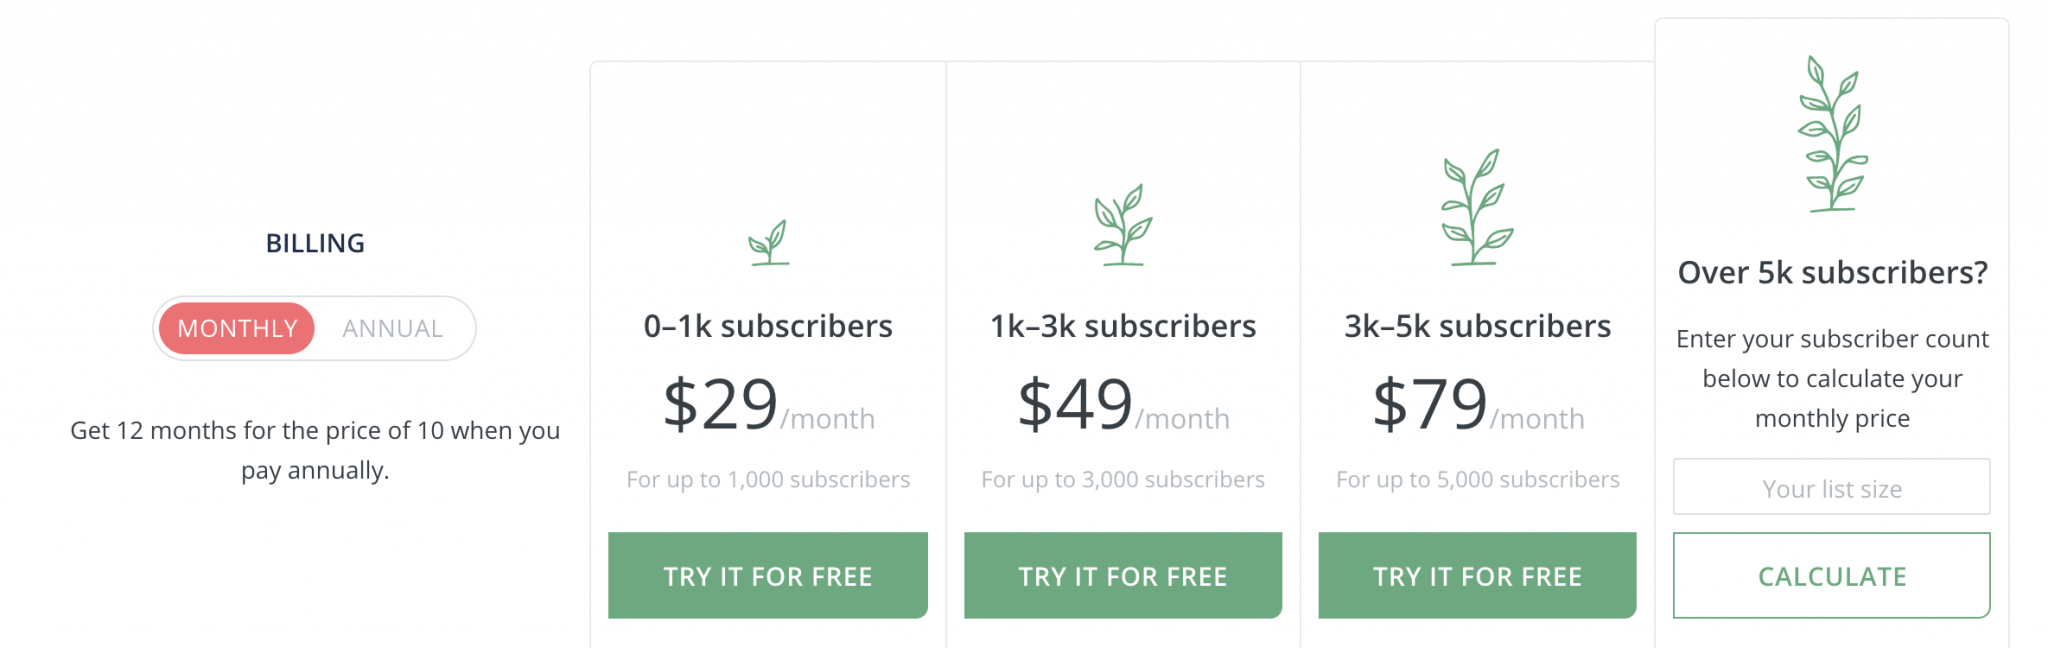 Online Promotional Code 20 Off Convertkit May 2020